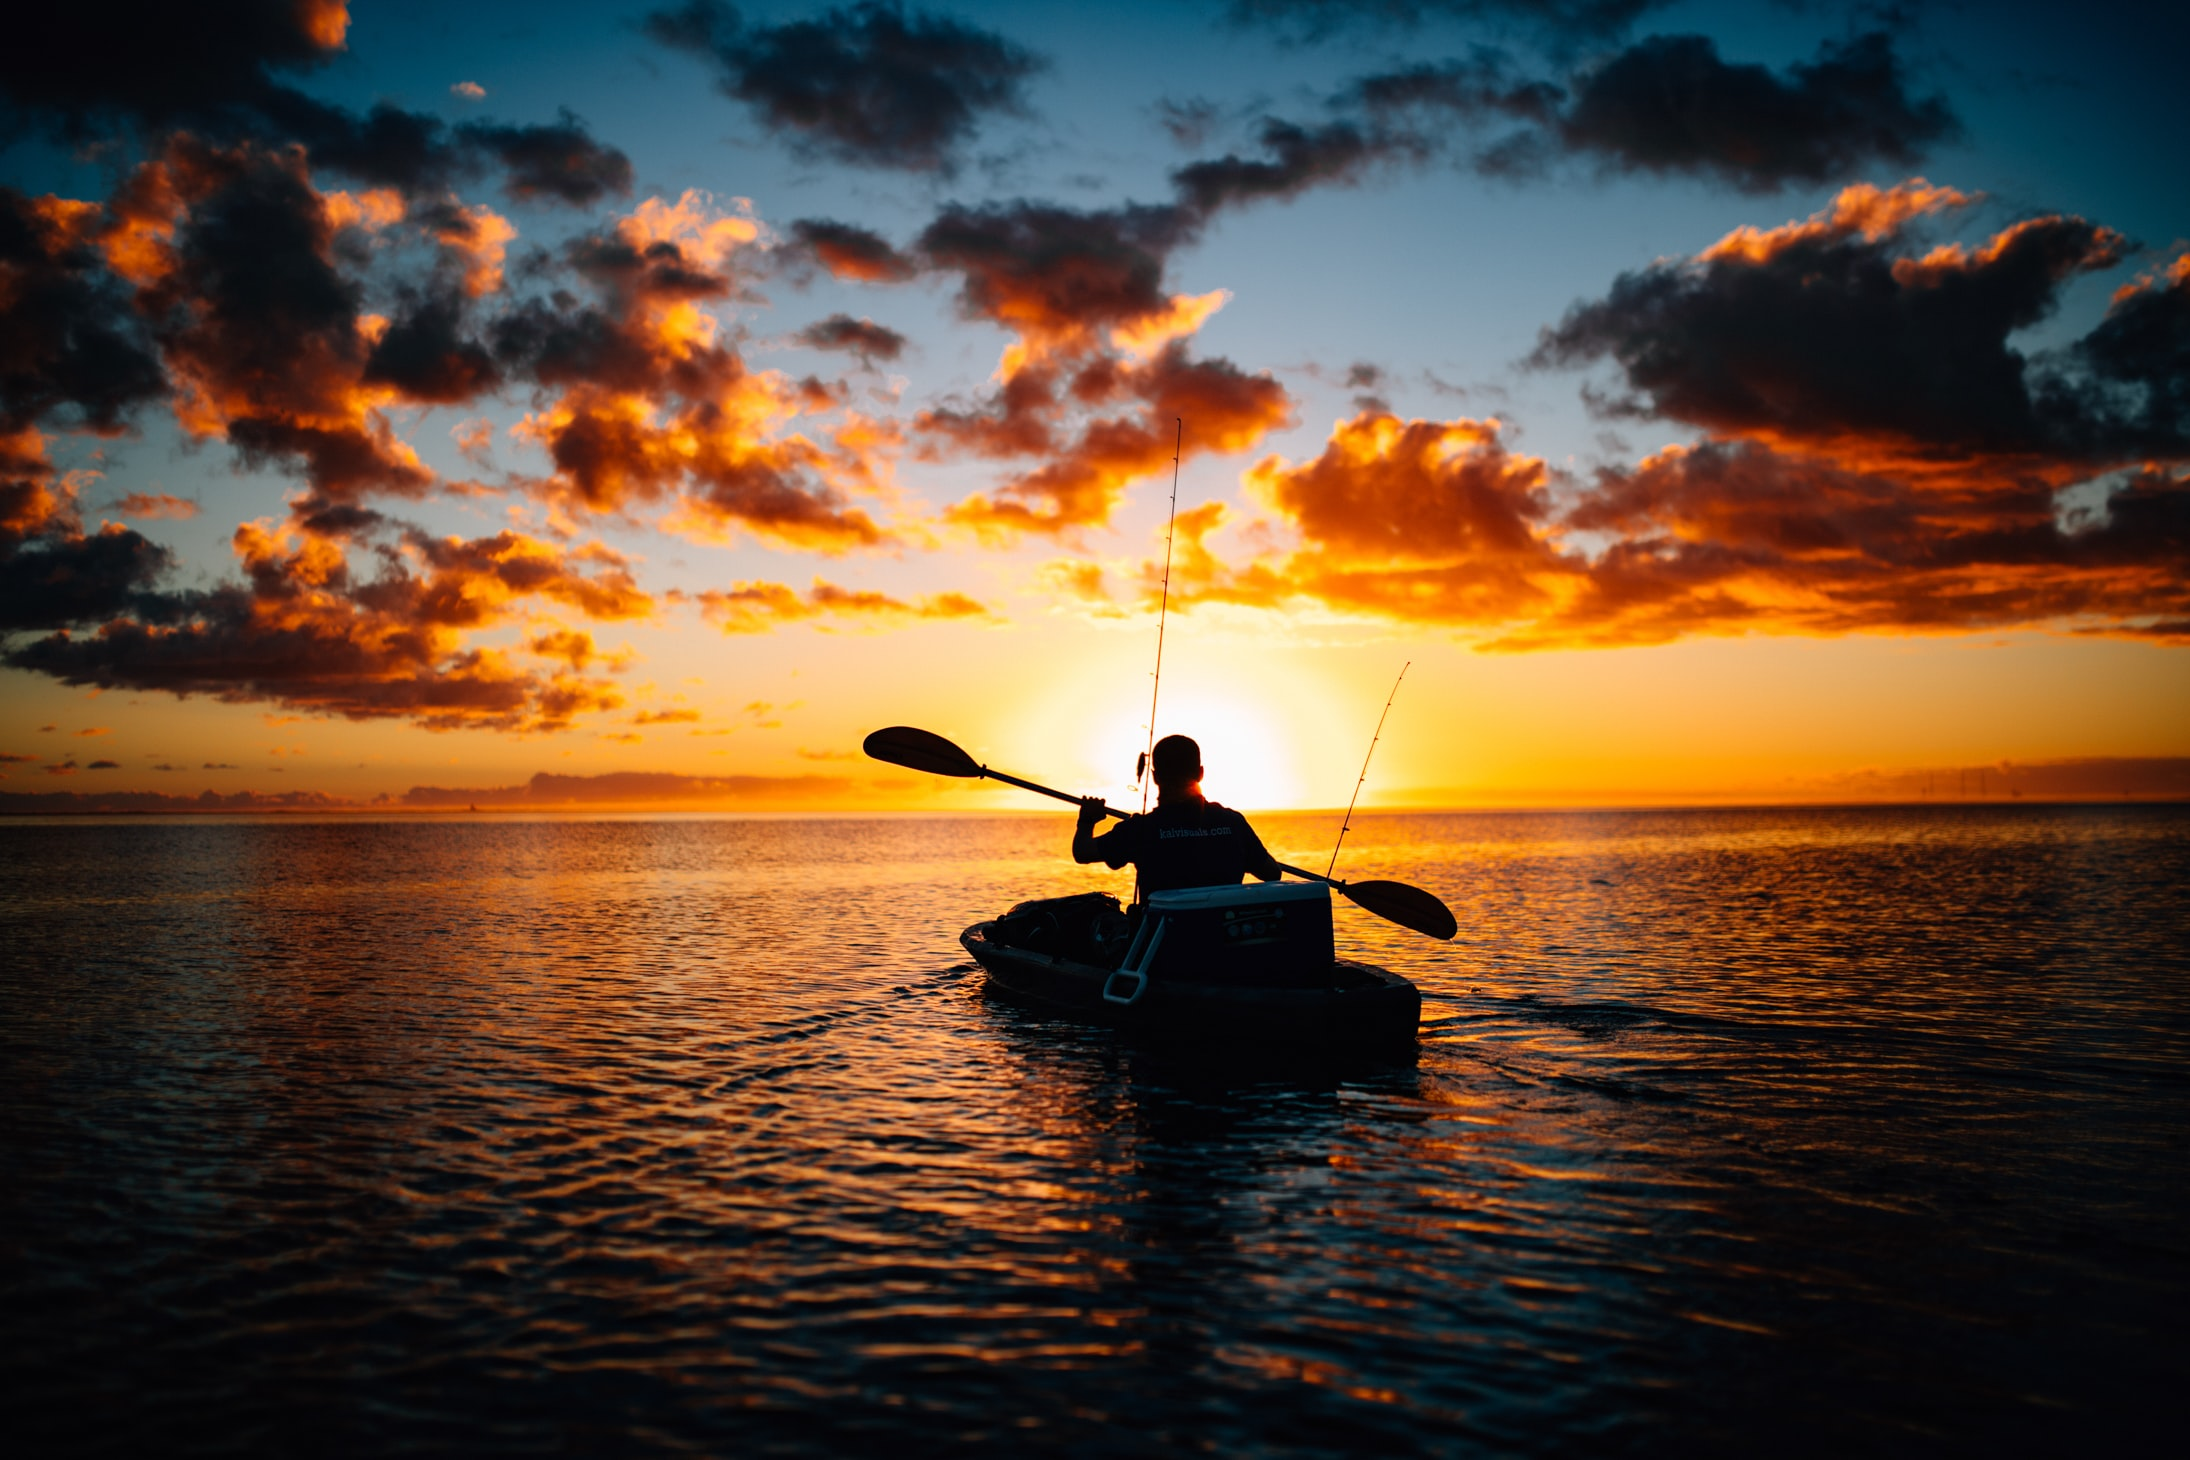 Silhouette of a man kayaking at sunset amidst a brilliant sky of deep gold, orange and red